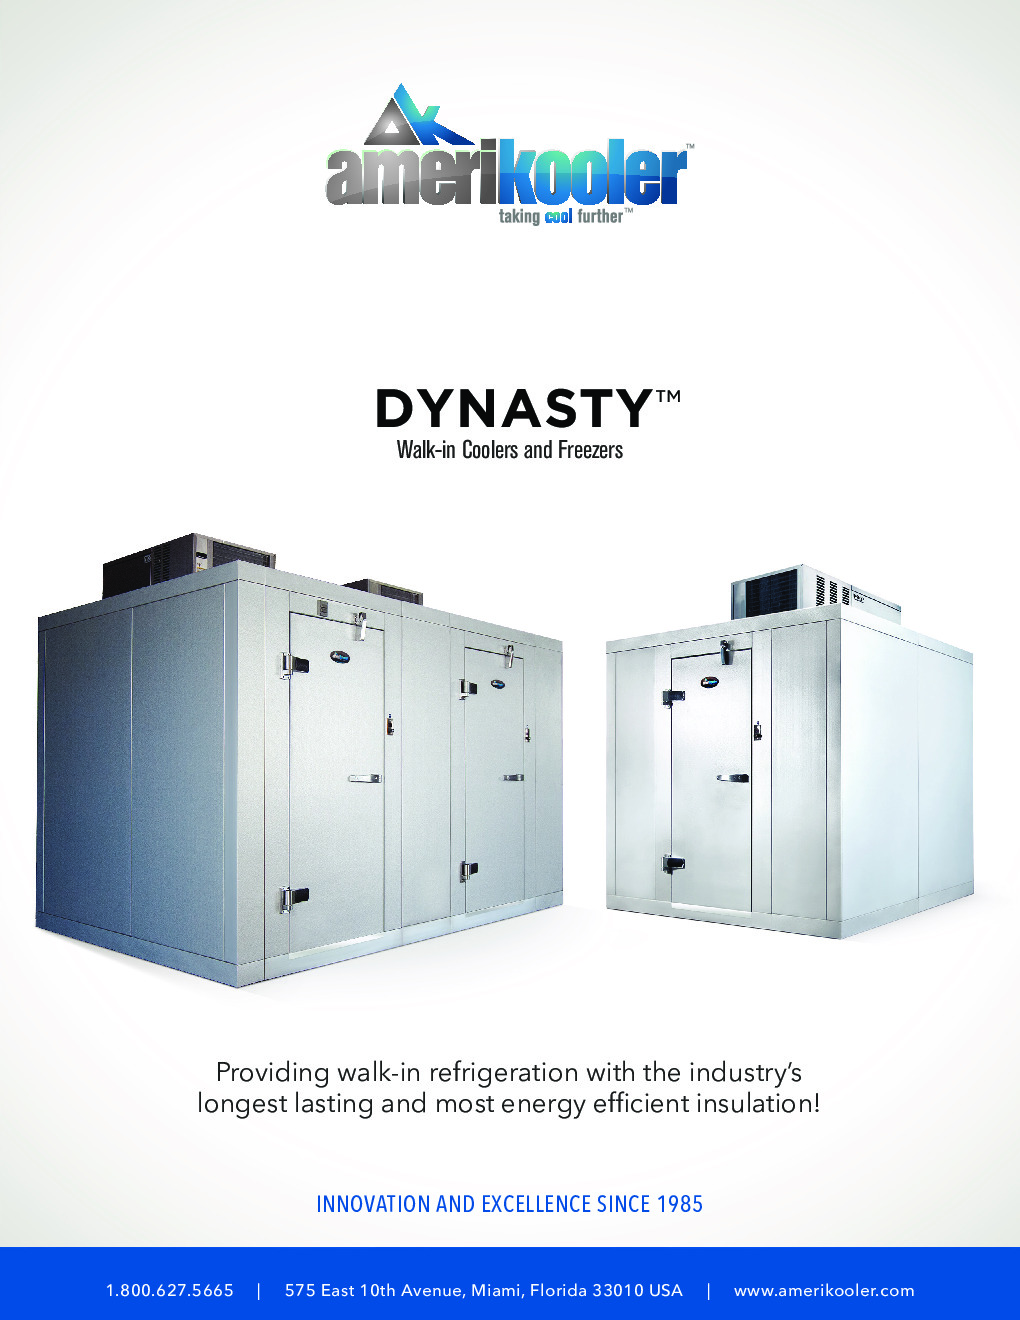 AmeriKooler DW081377N-6/7-RM 8' X 13' Walk-In Cooler, 7' L Cooler without Floor and 6' L Freezer, Remote